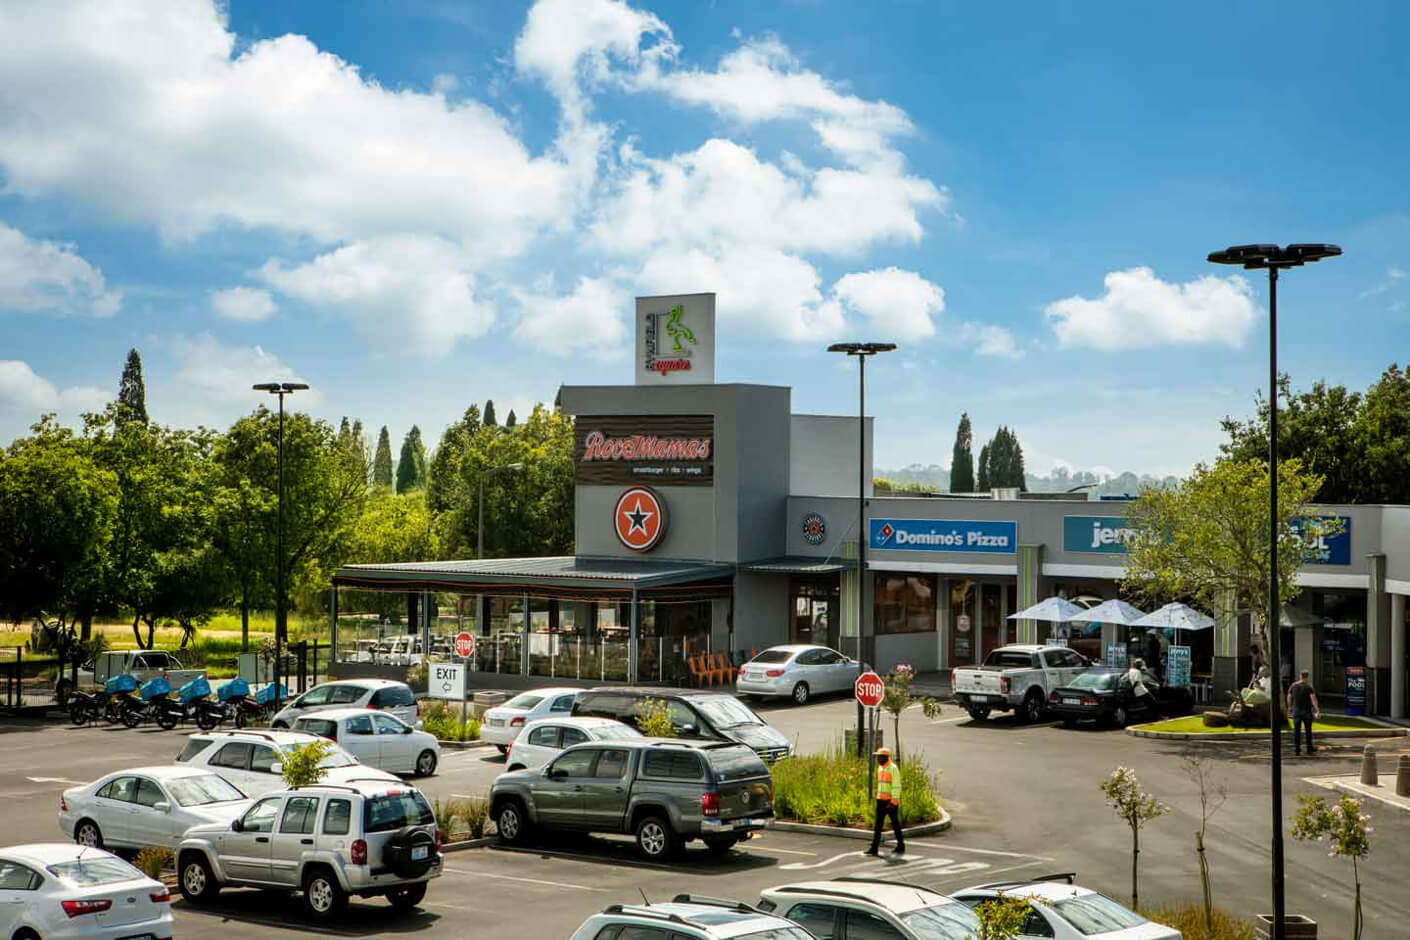 Parkling lot and restaurants at Rynfield Square in Benoni